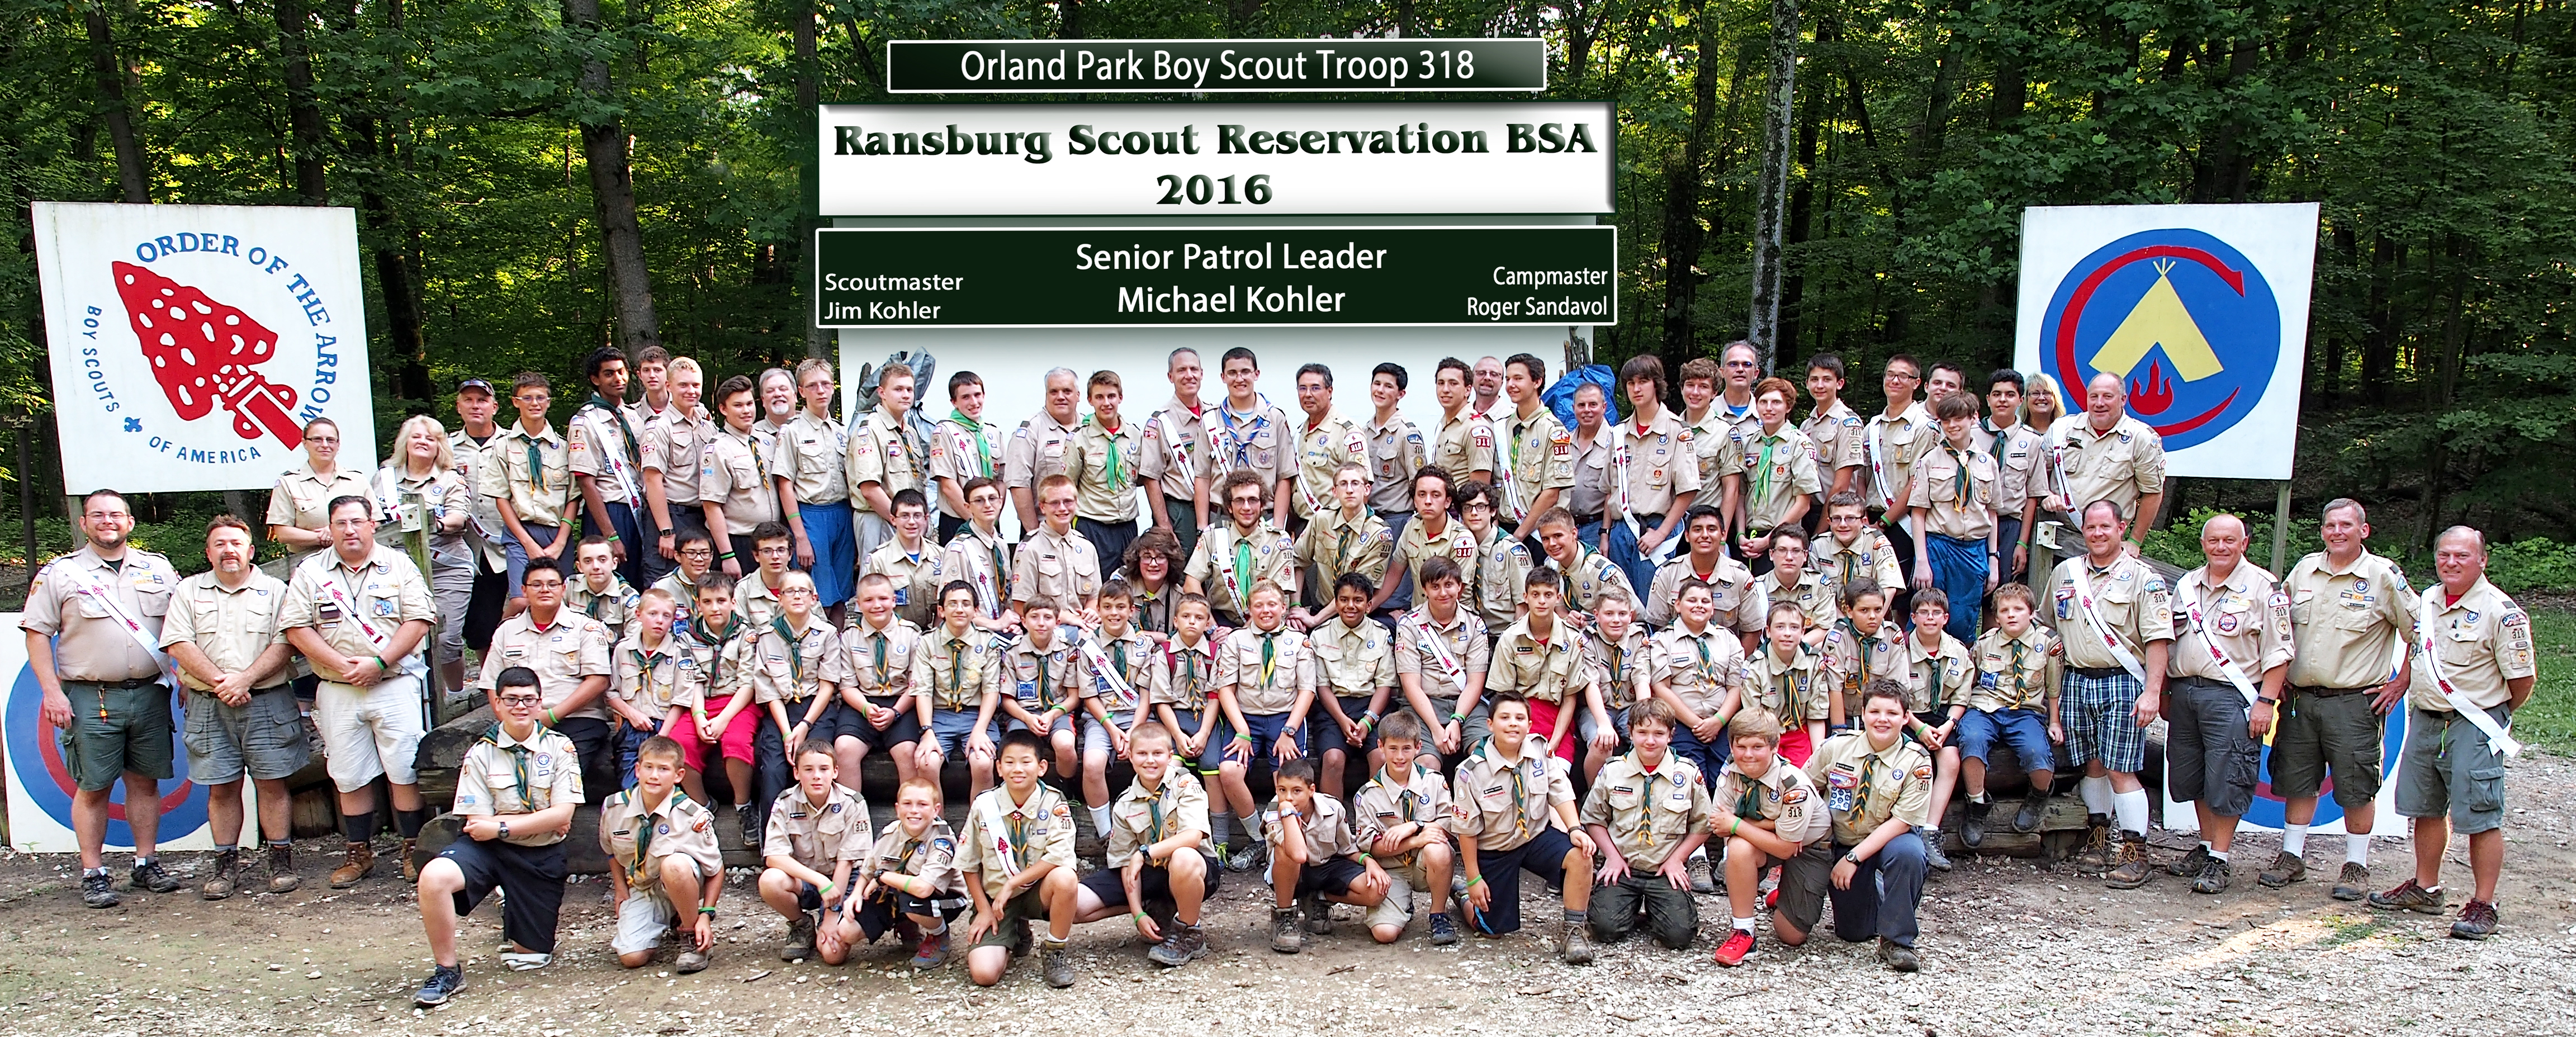 2016 Camp Ransburg - Troop 318 Scouts & Adults